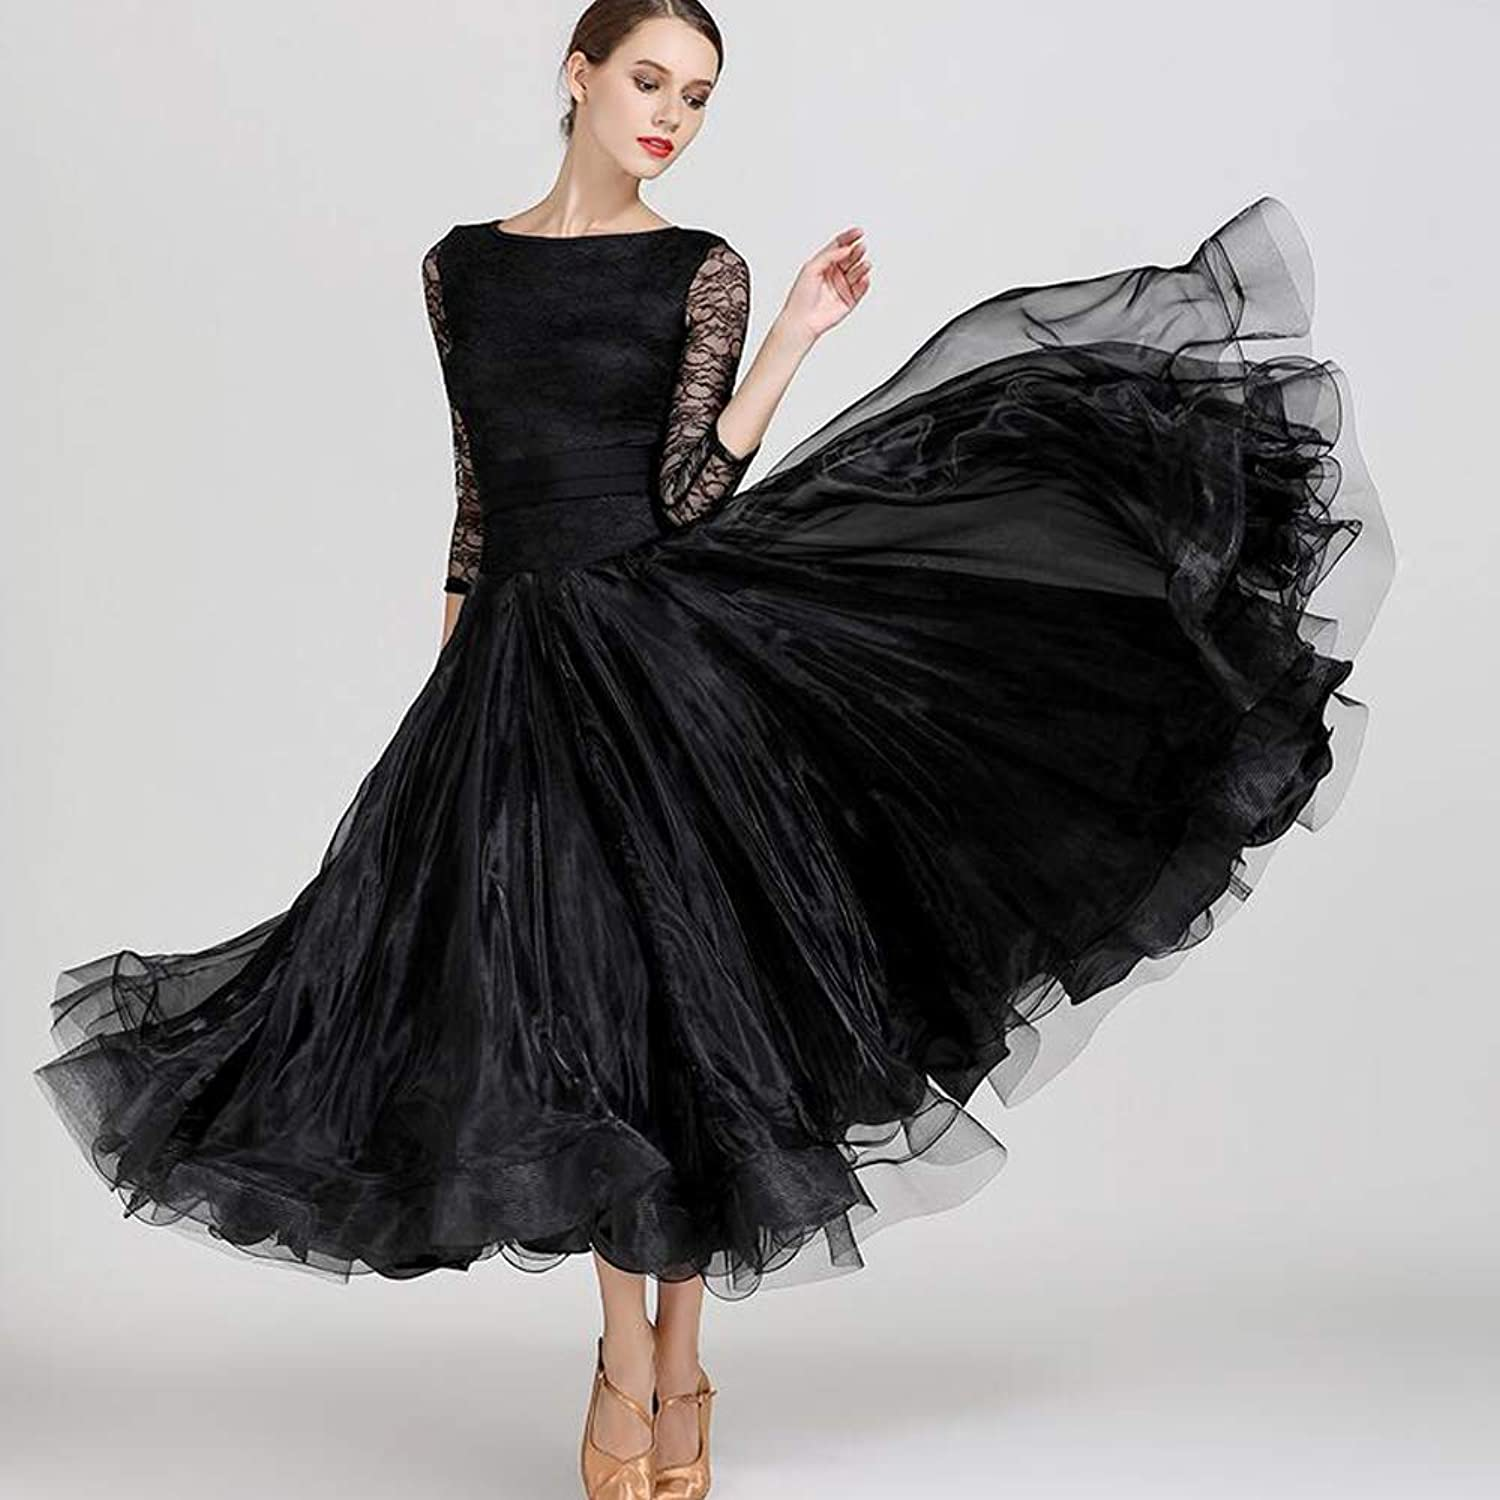 Women Dance Dress Black lace Long Sleeves Skirt Elastic Belt Organza Splicing Christmas Party Prom 720°Big Skirts Sequins Plus Size XL 2XL